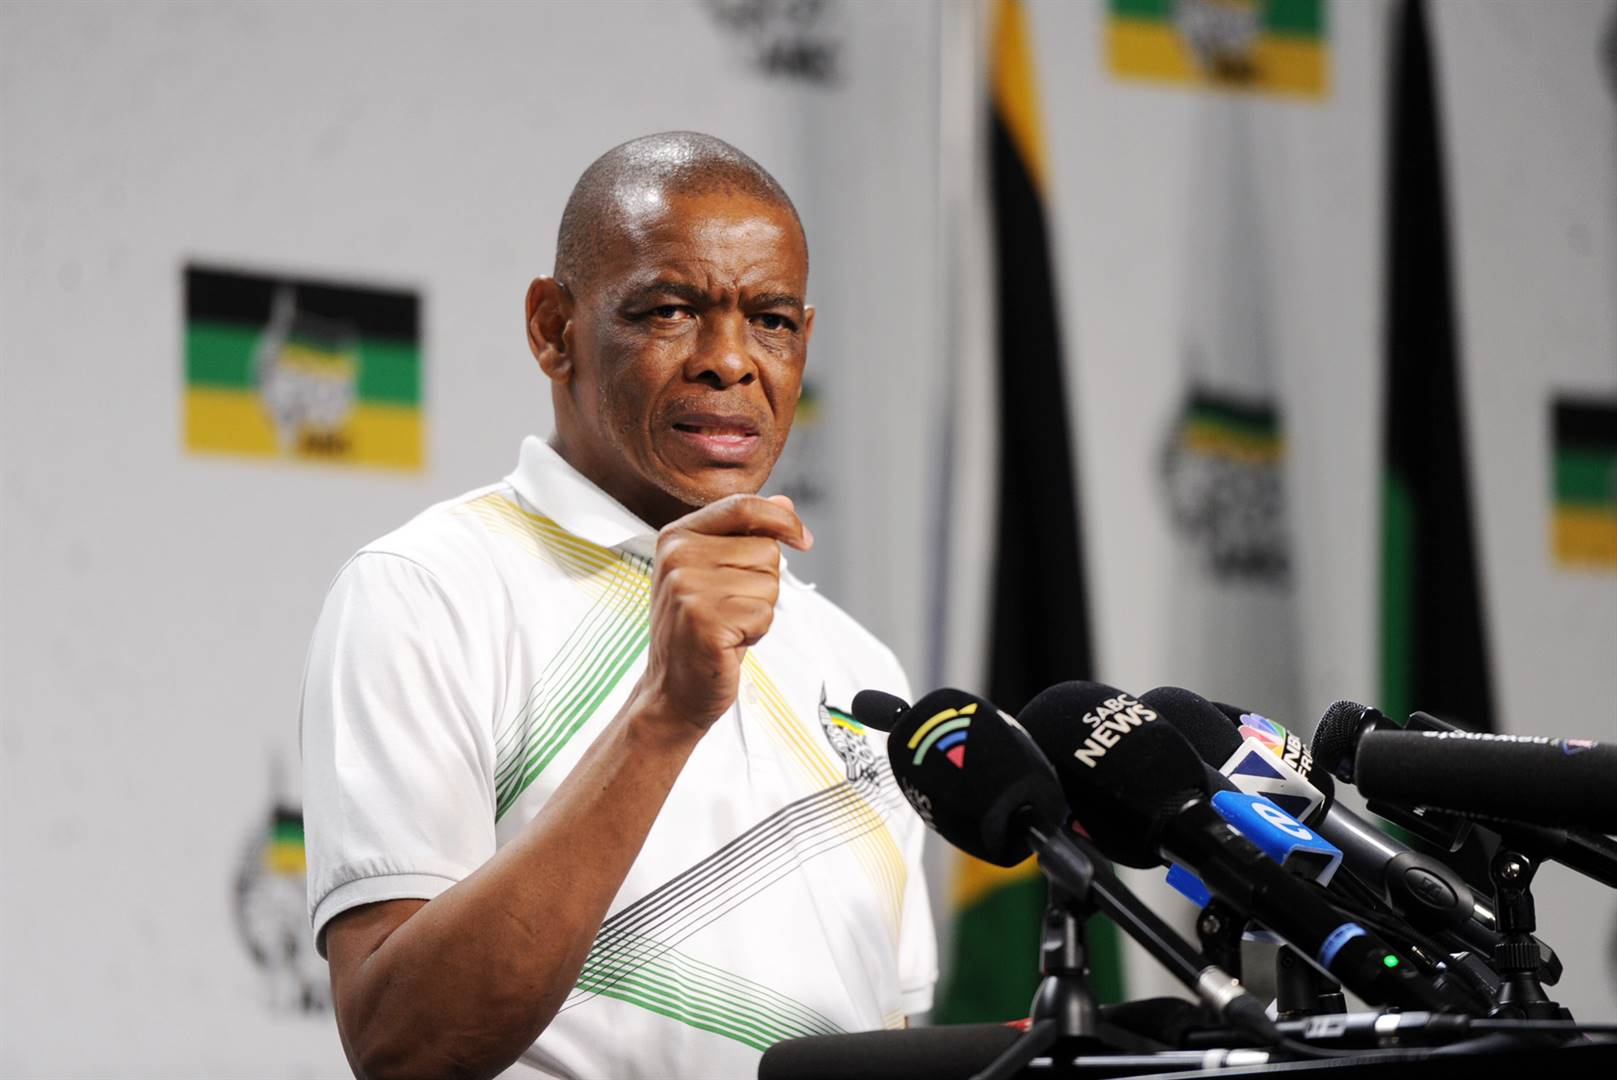 The reports of Magashule's imminent arrest come after the Hawks arrested several people last week after allegations of state capture and evidence heard at the Zondo commission. Picture: Archive